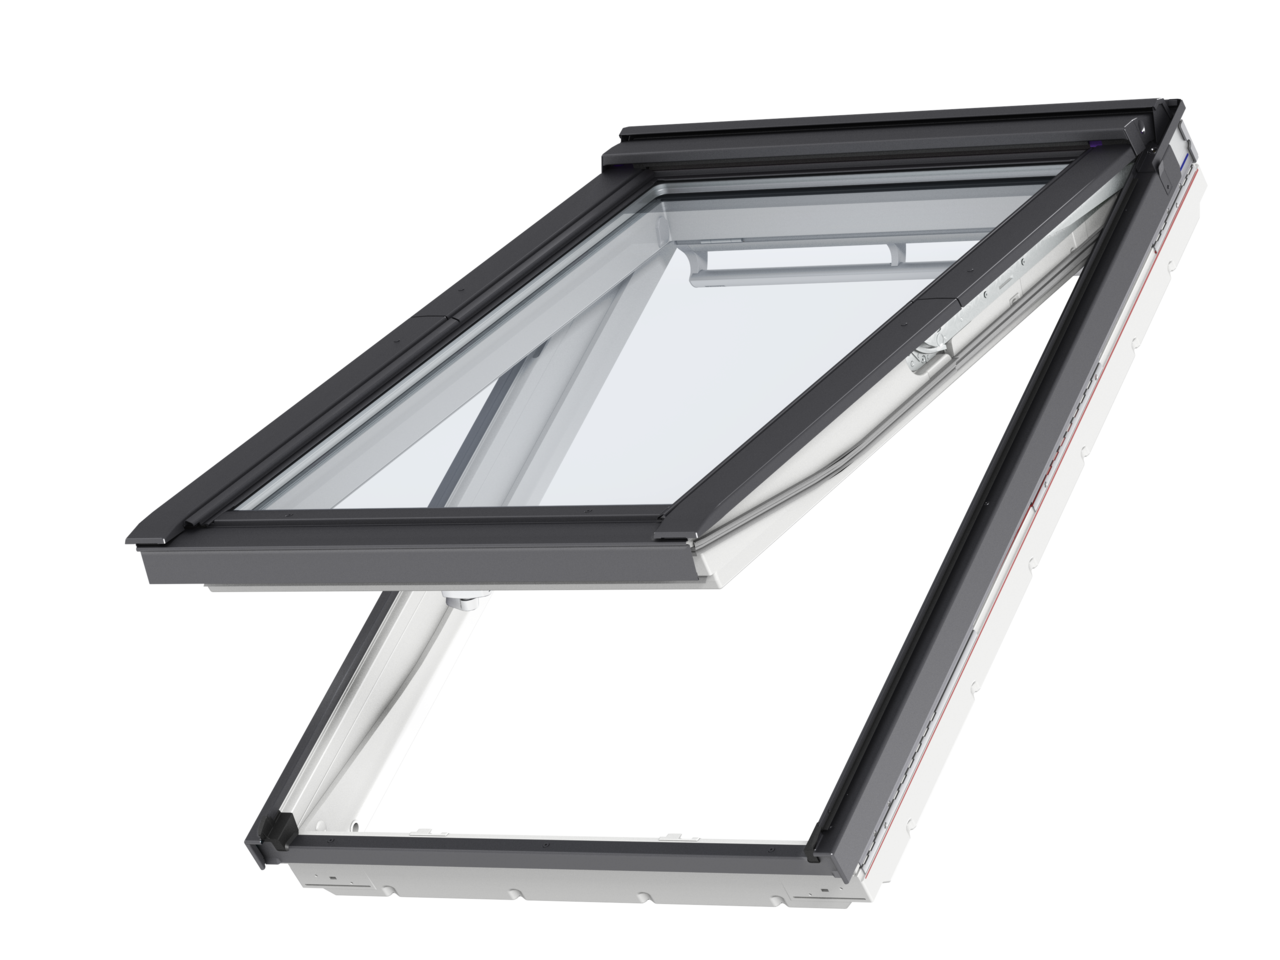 velux ggl mk04 excellent item velux ggl mk xmm centre pivot roof window velux ggl mk xmm centre. Black Bedroom Furniture Sets. Home Design Ideas